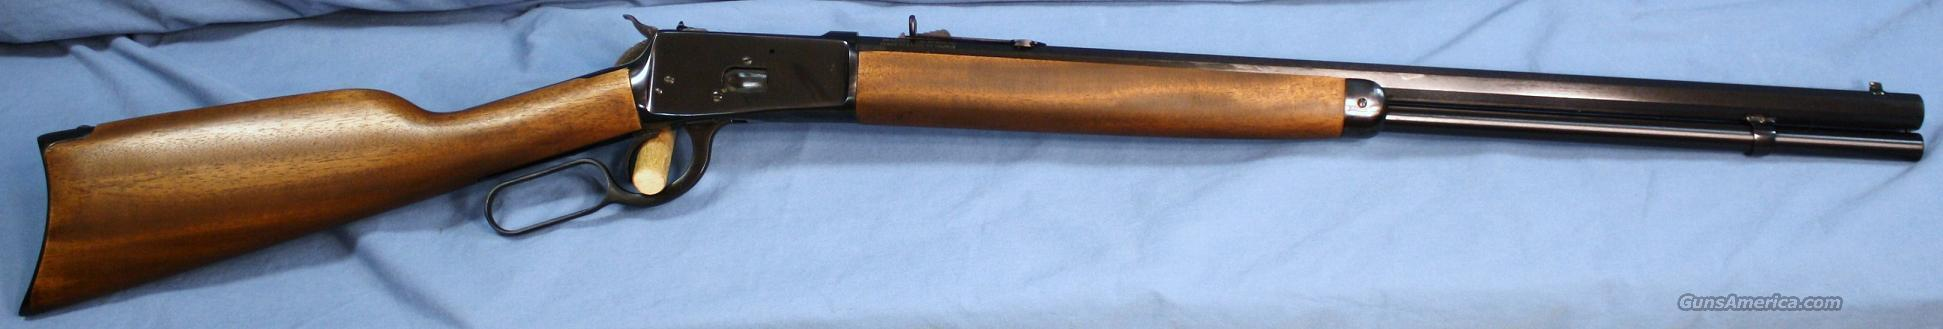 Rossi Model 92 Lever Action Rifle .45 Colt  Guns > Rifles > Rossi Rifles > Cowboy